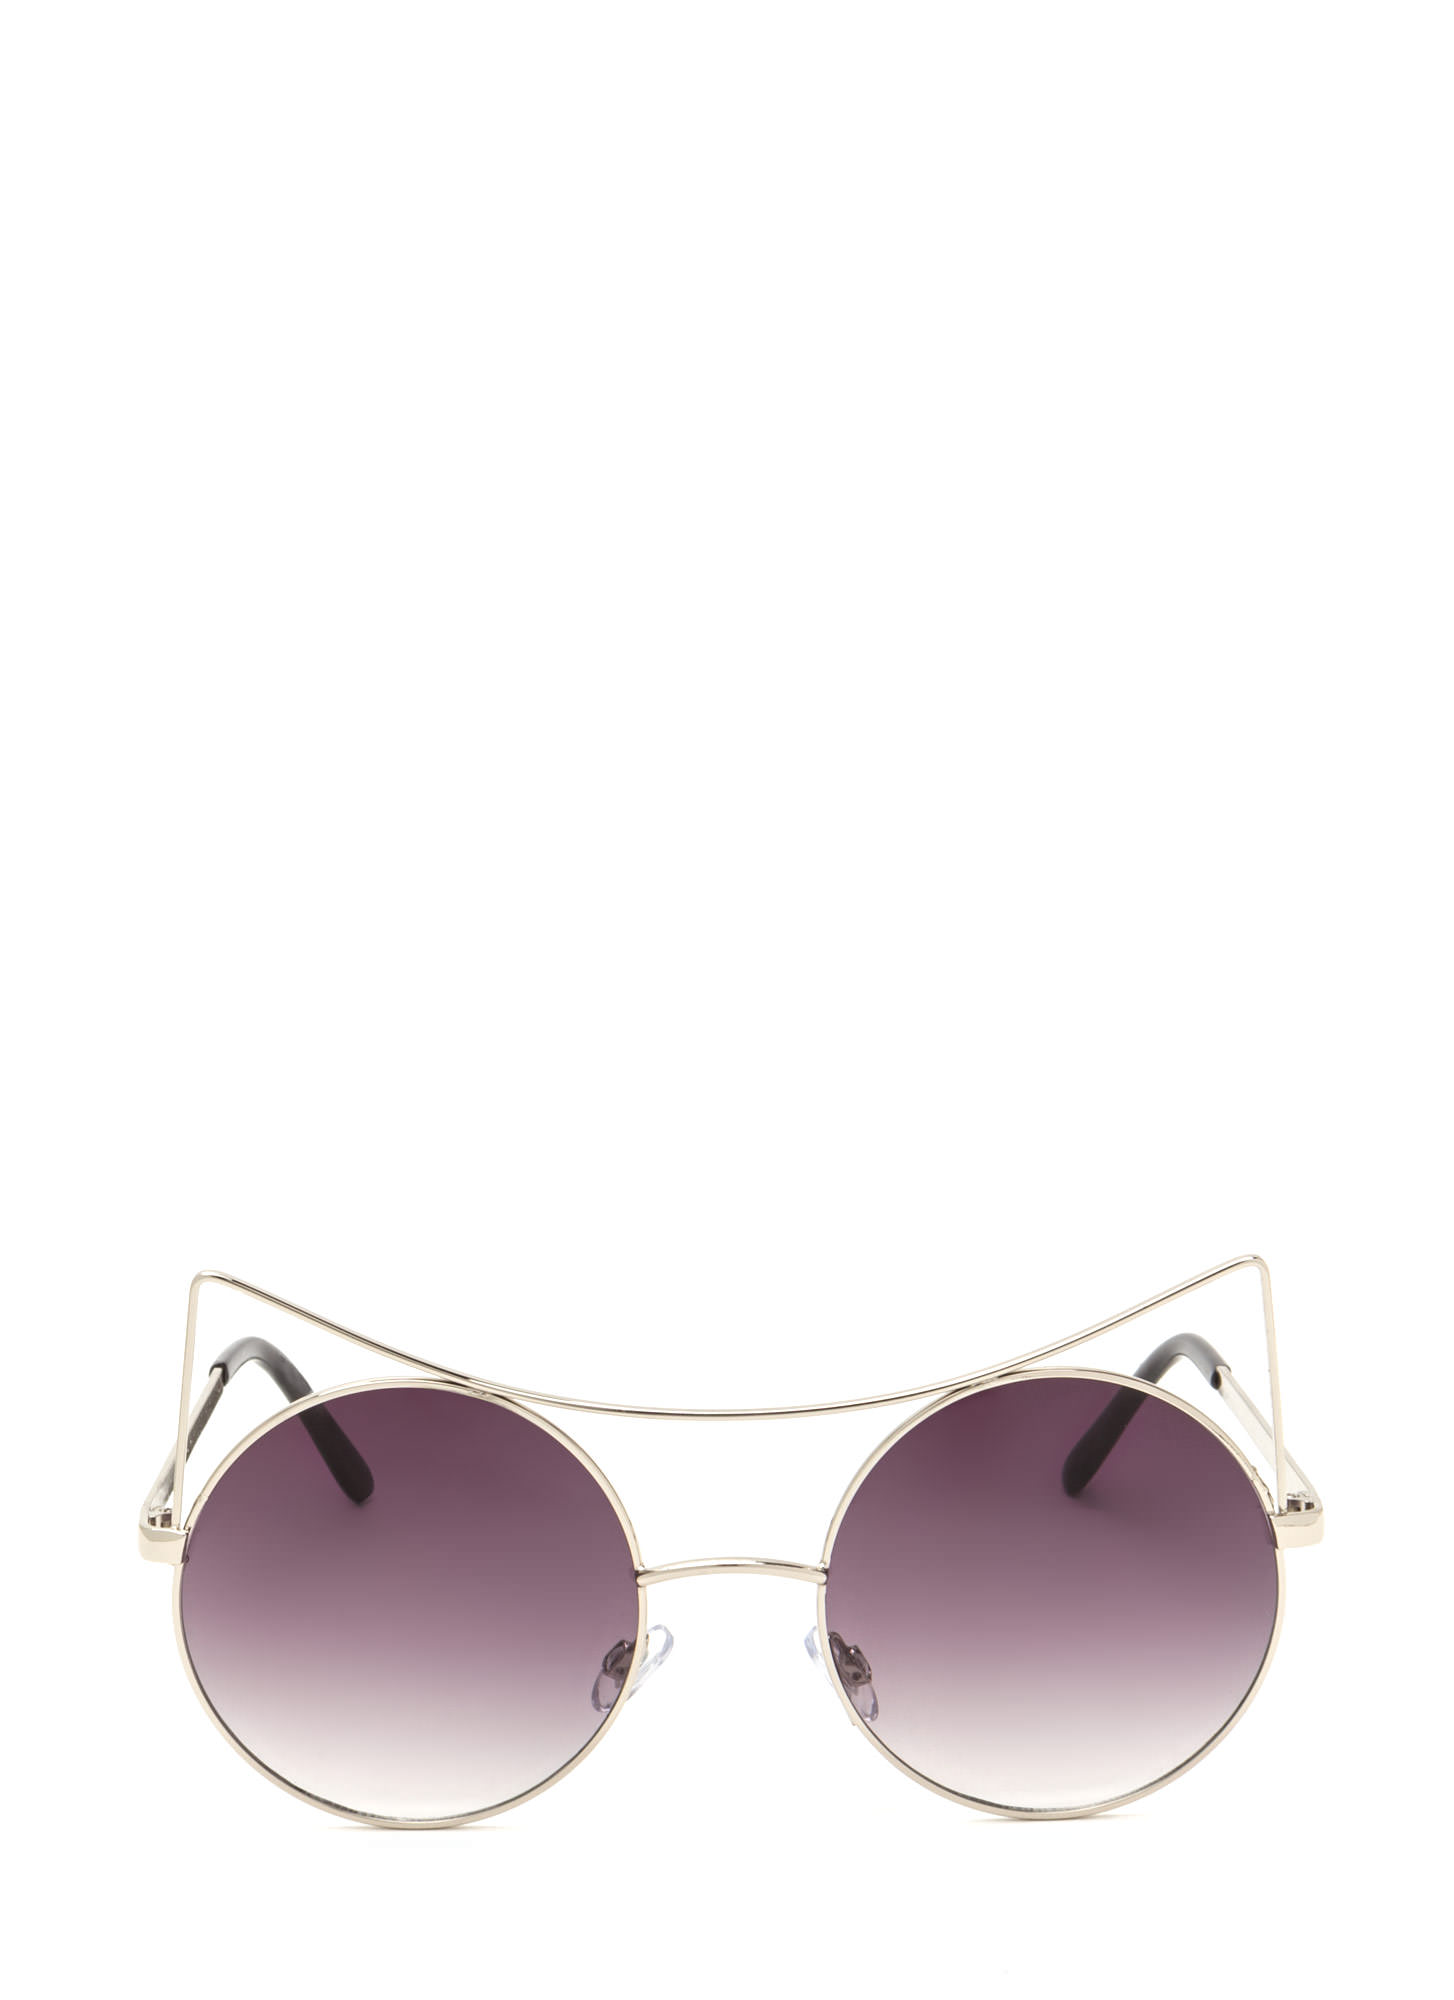 Purr-fect Round Cat Ear Sunglasses SILVER